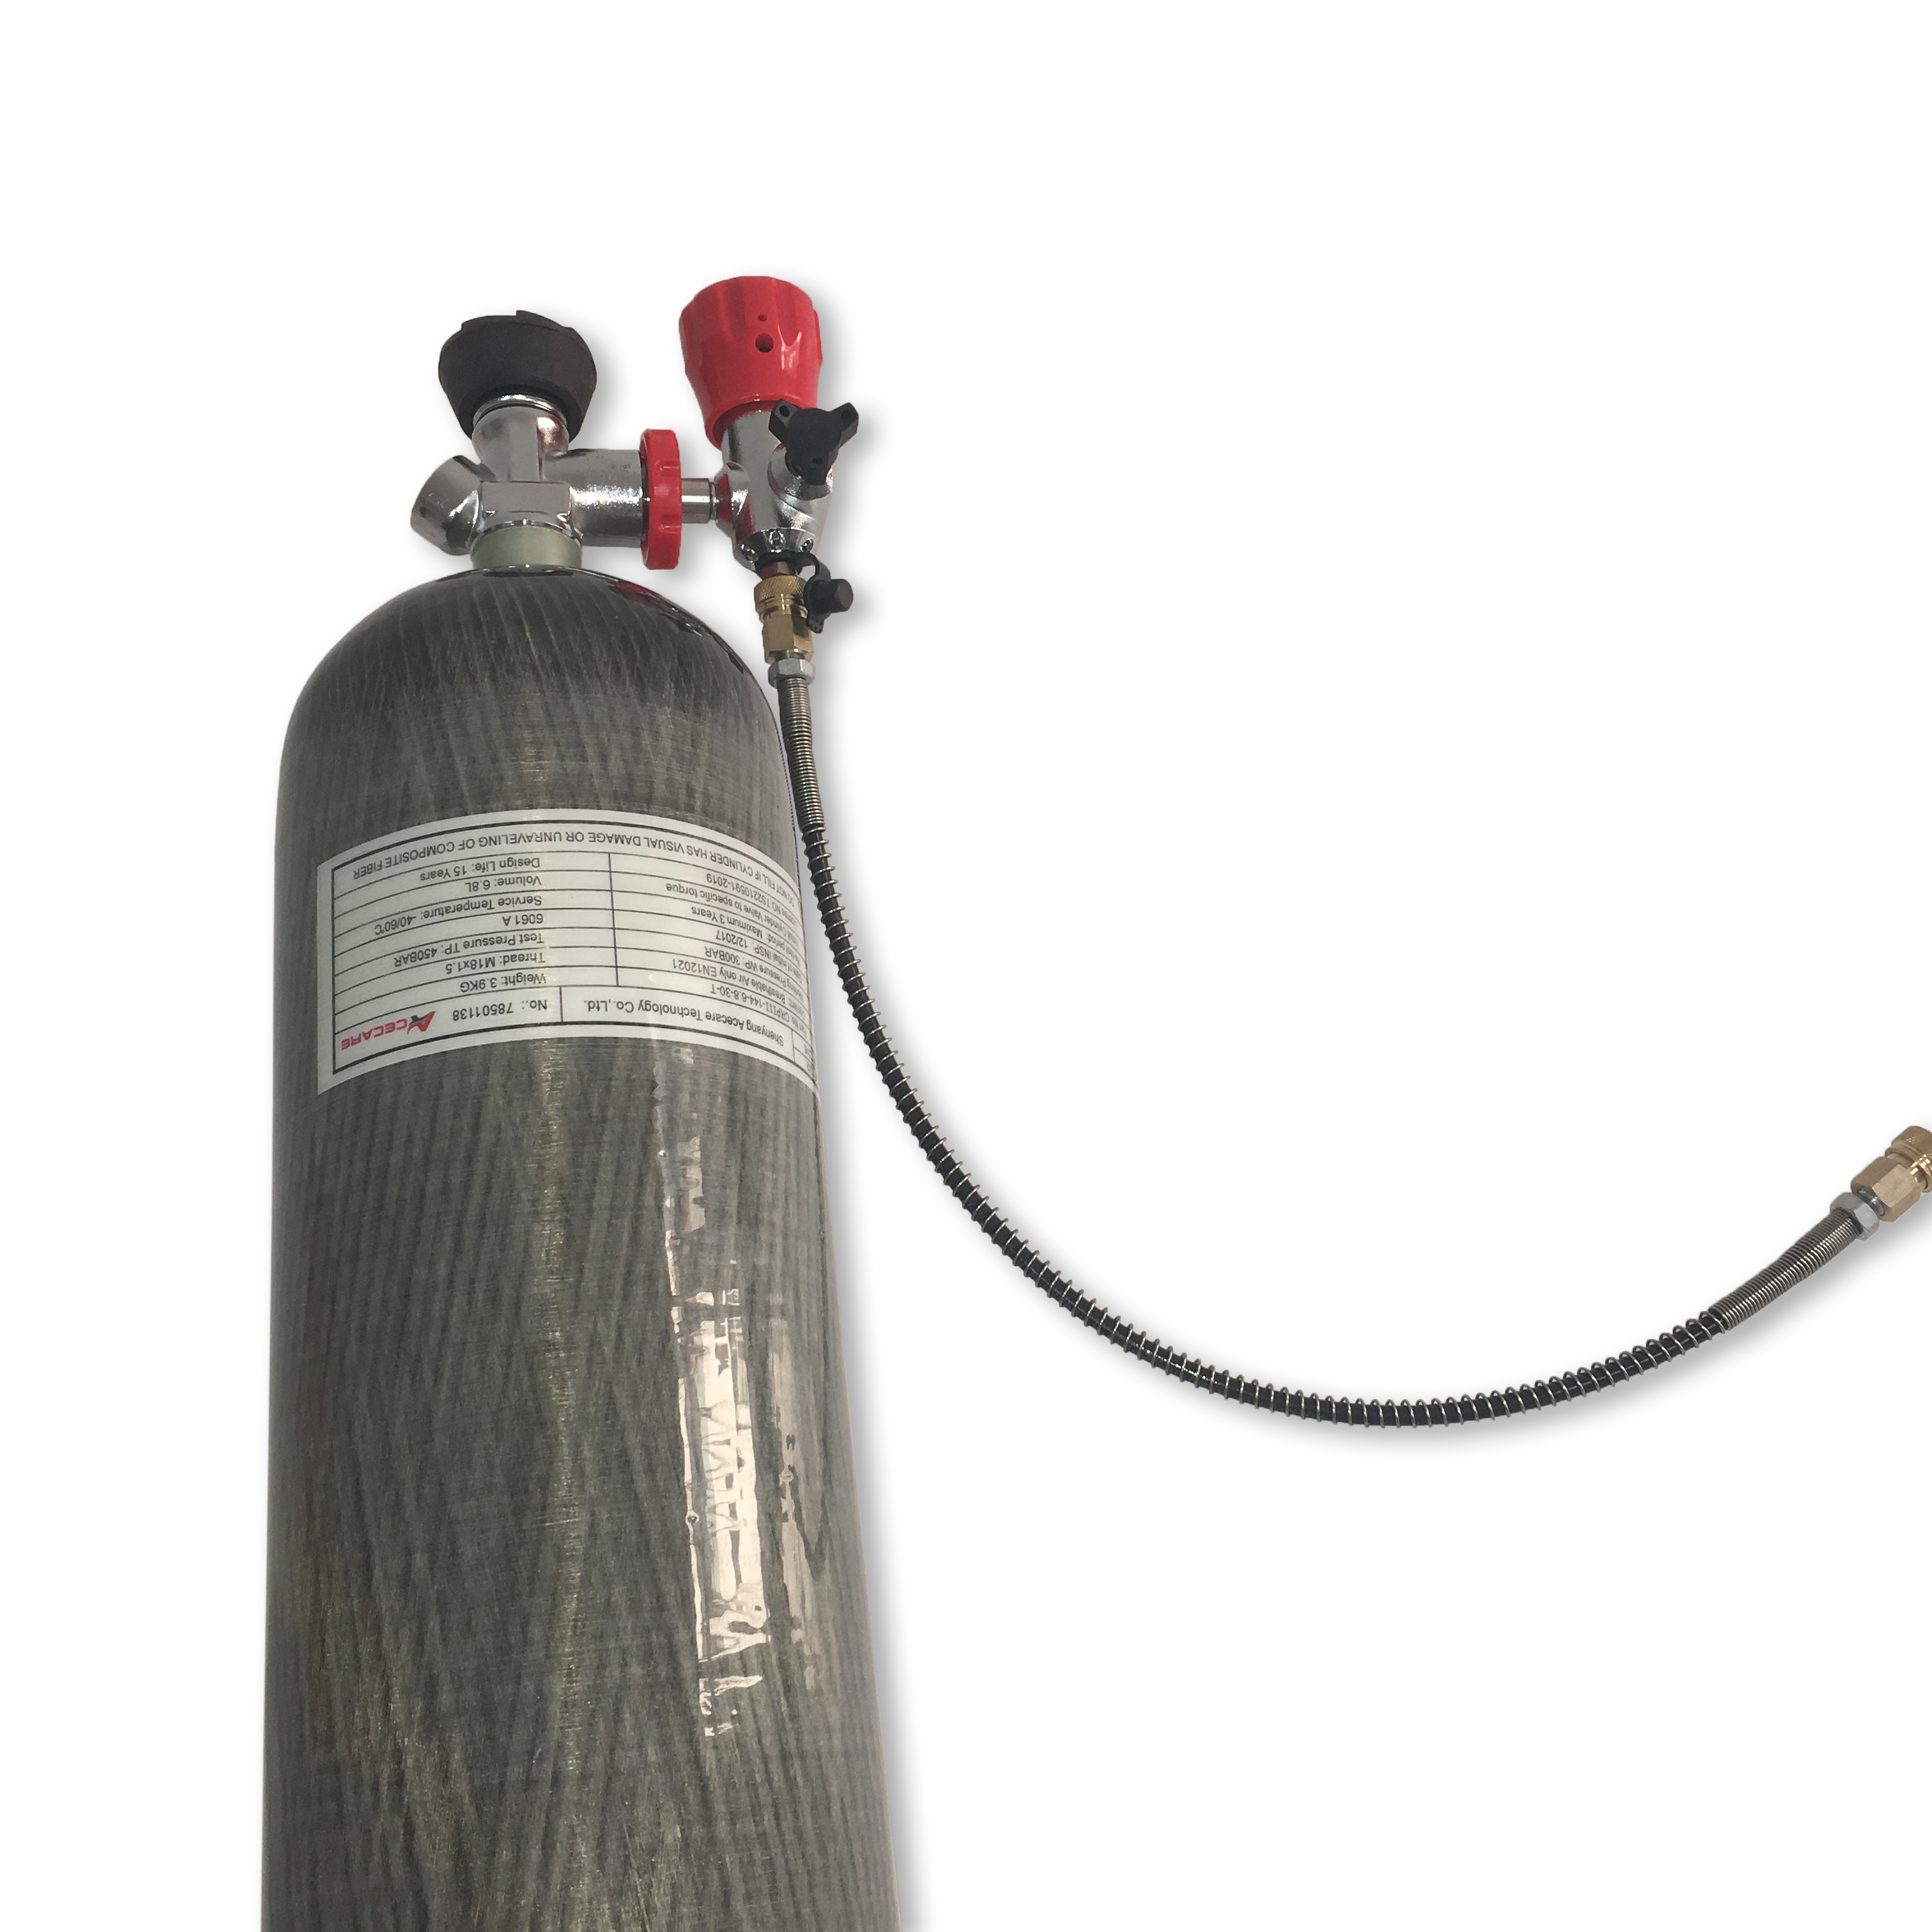 AC168301 6.8L 4500Psi Carbon Fiber Cylinder With PCP Valve And Fill Station For Scuba Set/Underwater Shotgun/Paintball Tank